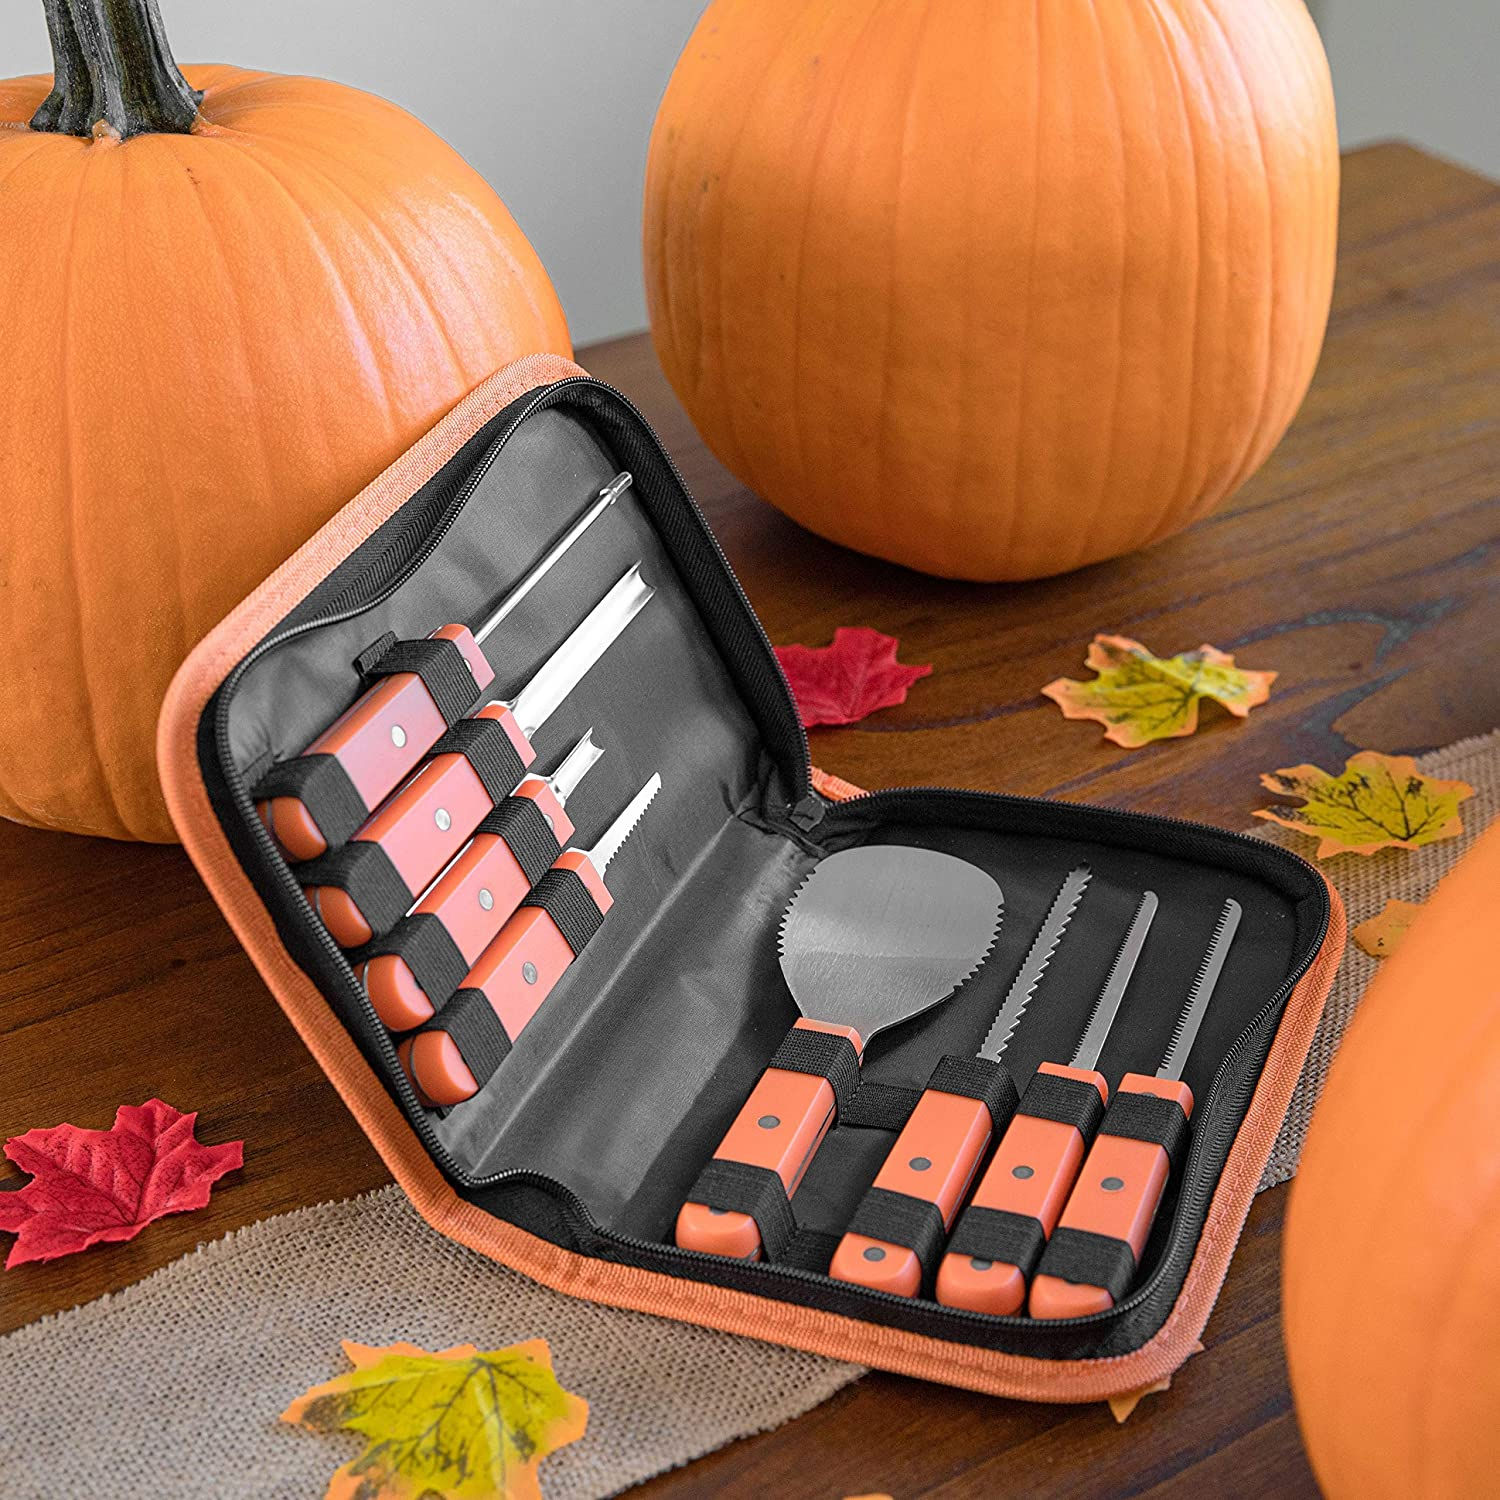 Professional Pumpkin Carving Kit